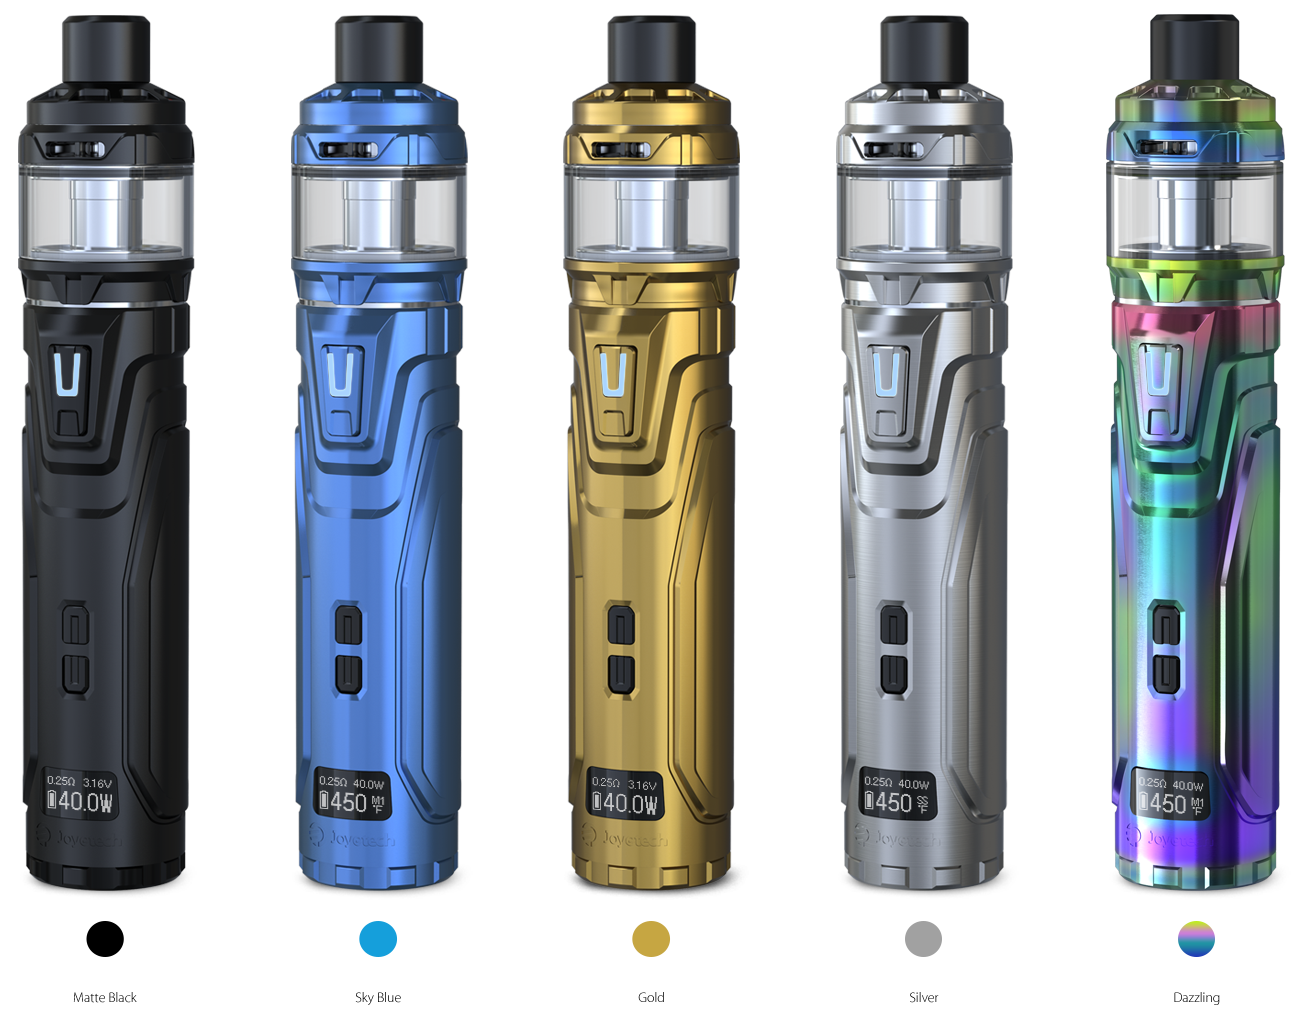 Joyetech Cubis Max Tank Colors Available